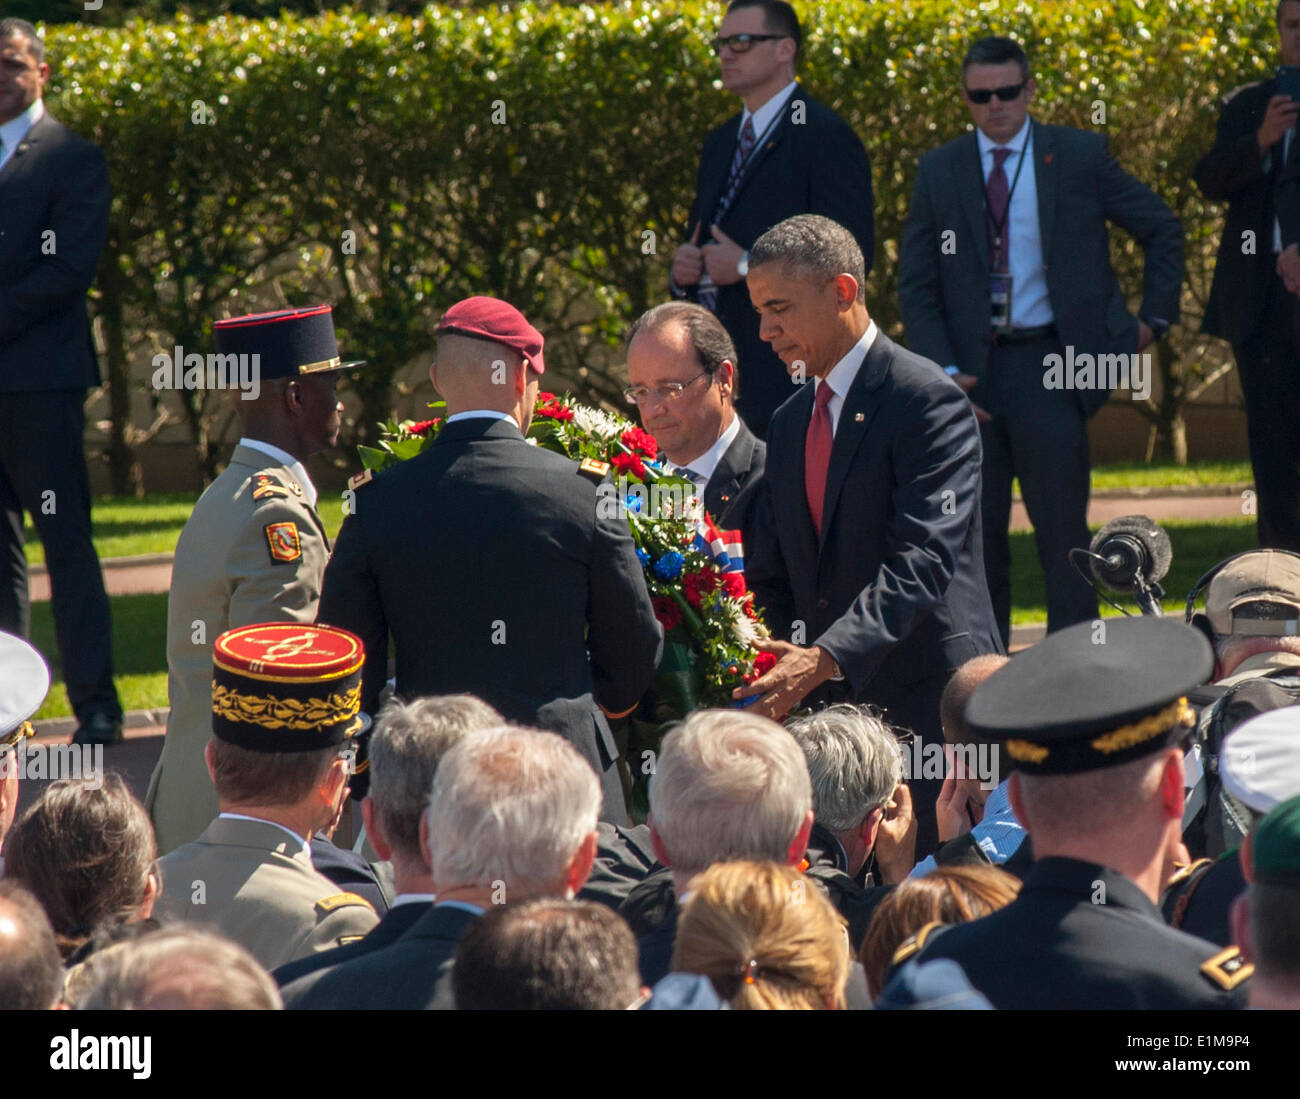 Colleville, Normandy, France. 6th June, President Barack Obama honours the veternas during the D-Day 70th Anniversary Ceremonies visiting 'World War II'  Cemetery - Stock Image